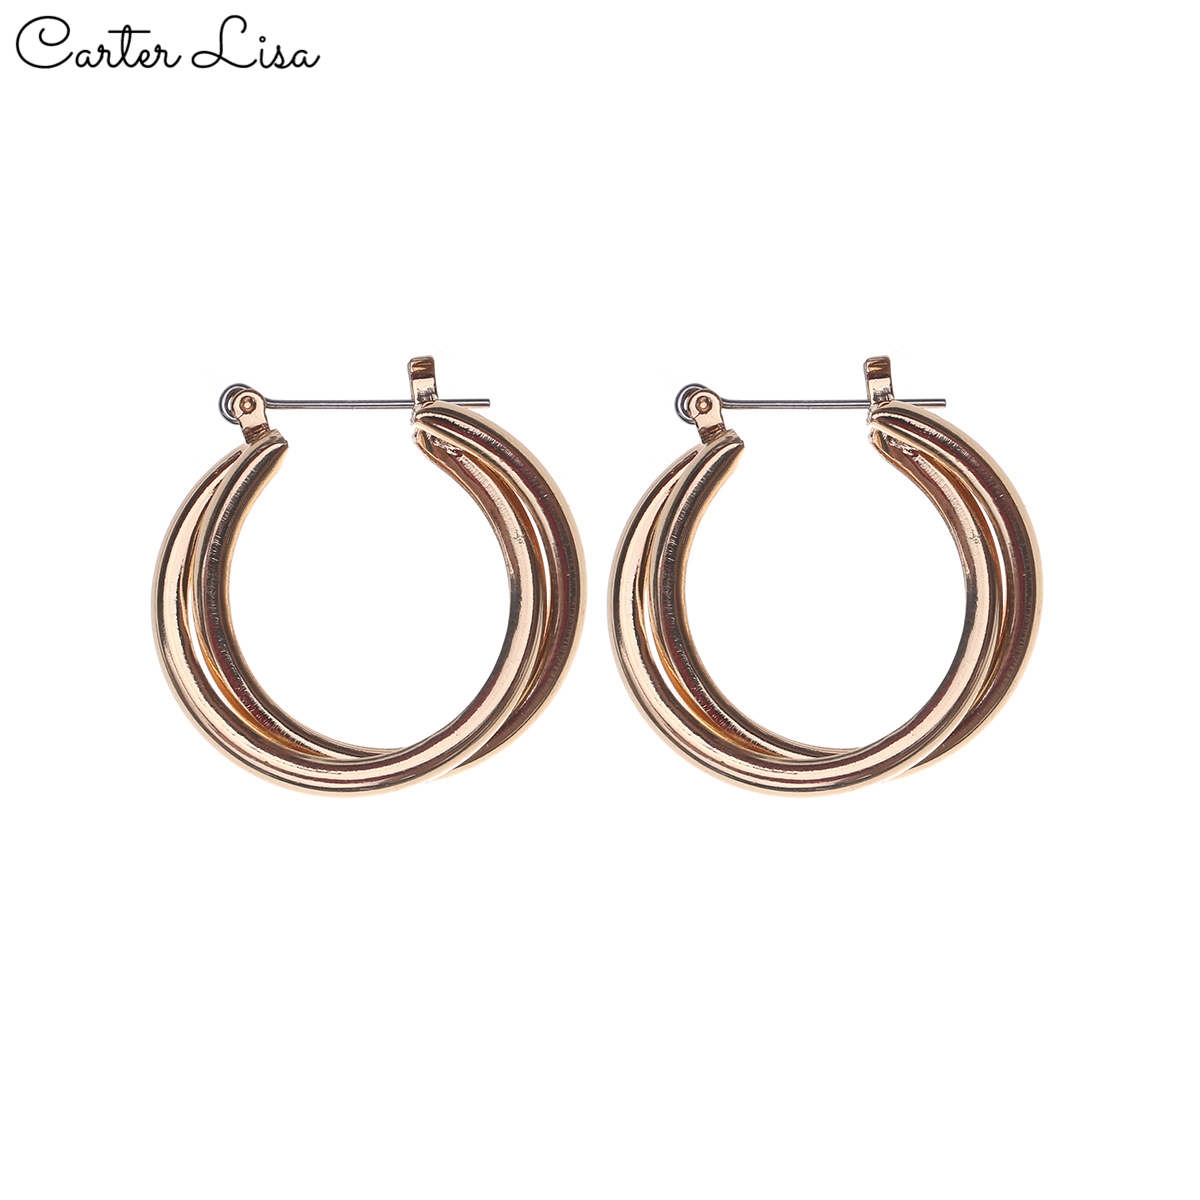 CARTER LISA 1 Pair Sexy Women Alloy Smooth Gold Color Round Hoop Earrings For Ladies Circle Ear Buckle Jewelry 1.2 Inch